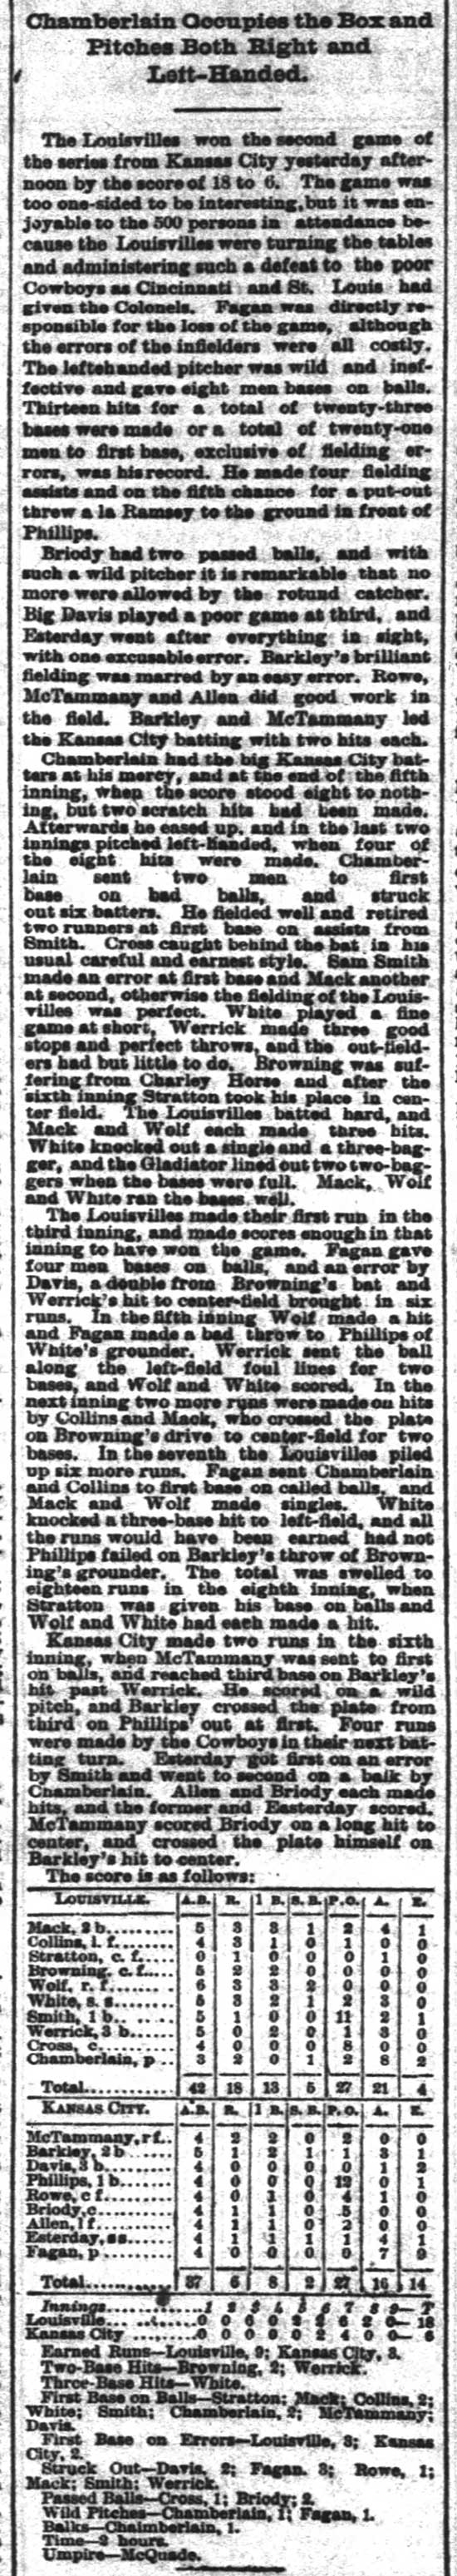 elton_chamberlain_pitches_left-and-right courier-journal 1888